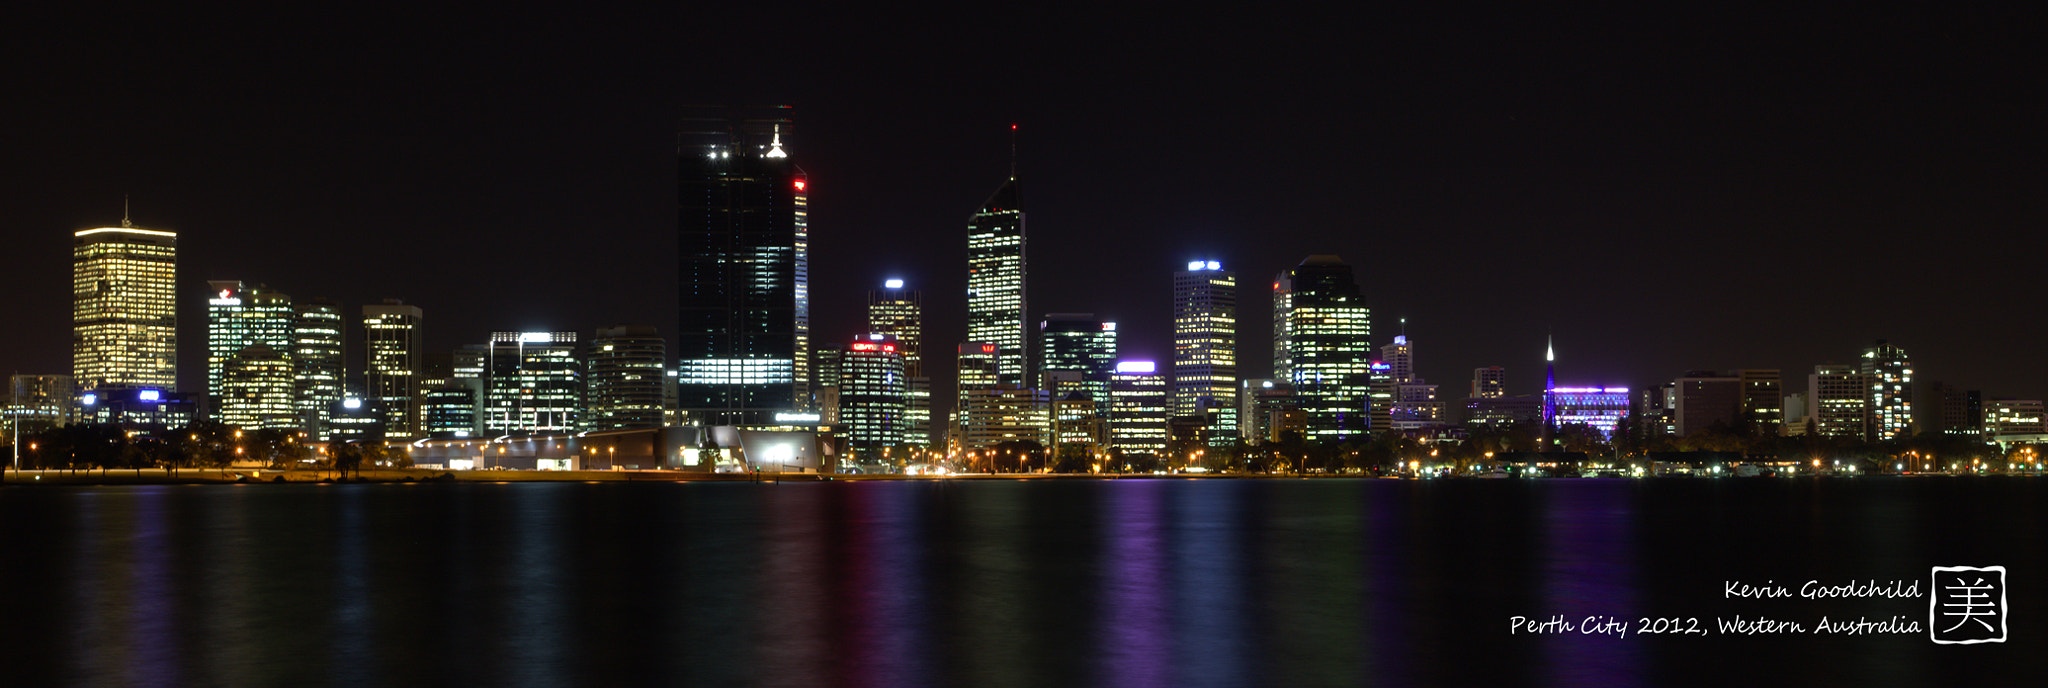 Photograph Perth city at Night by Kevin Goodchild on 500px